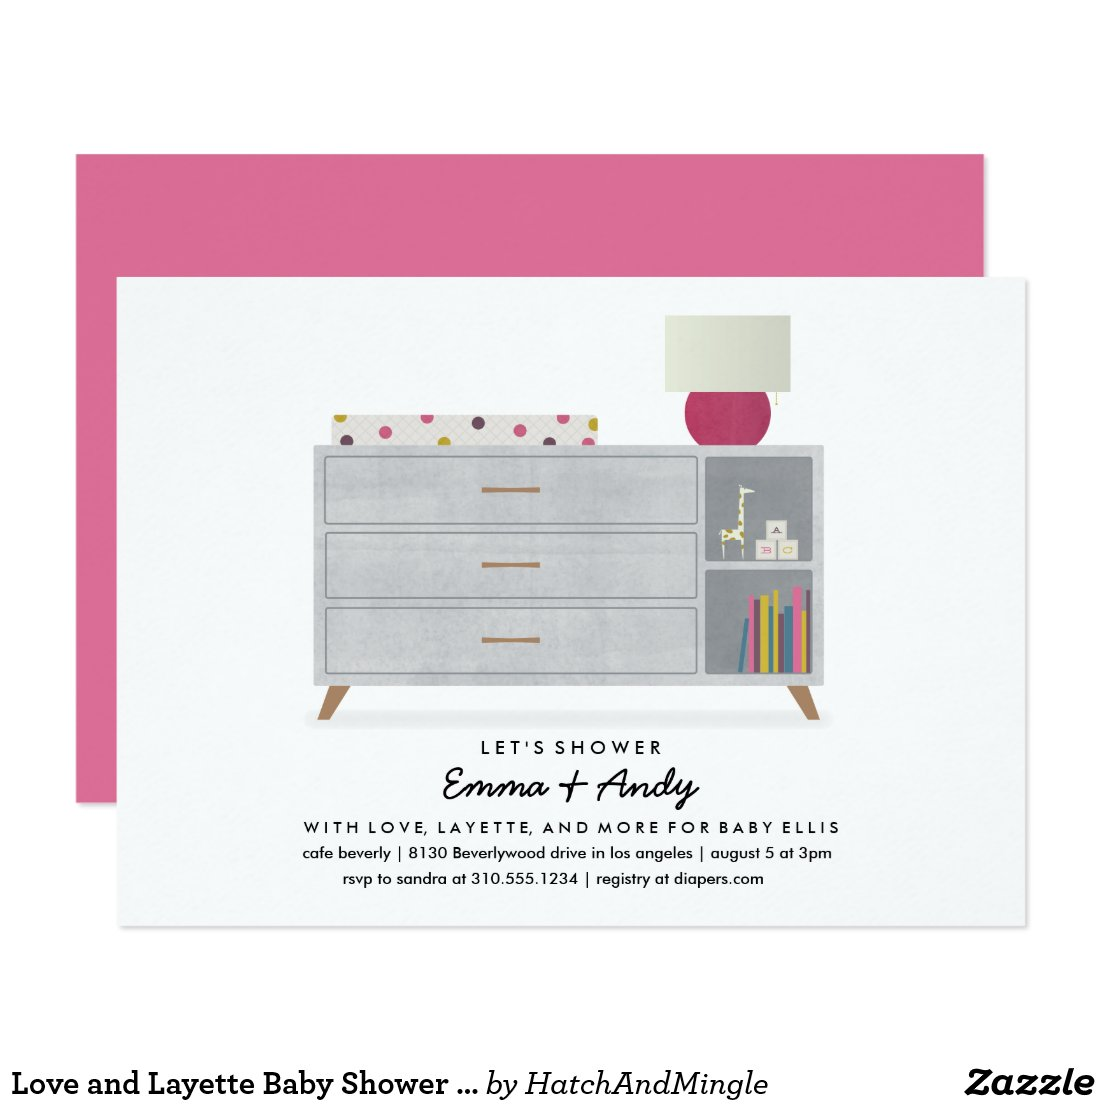 Love and Layette Baby Shower Invitations